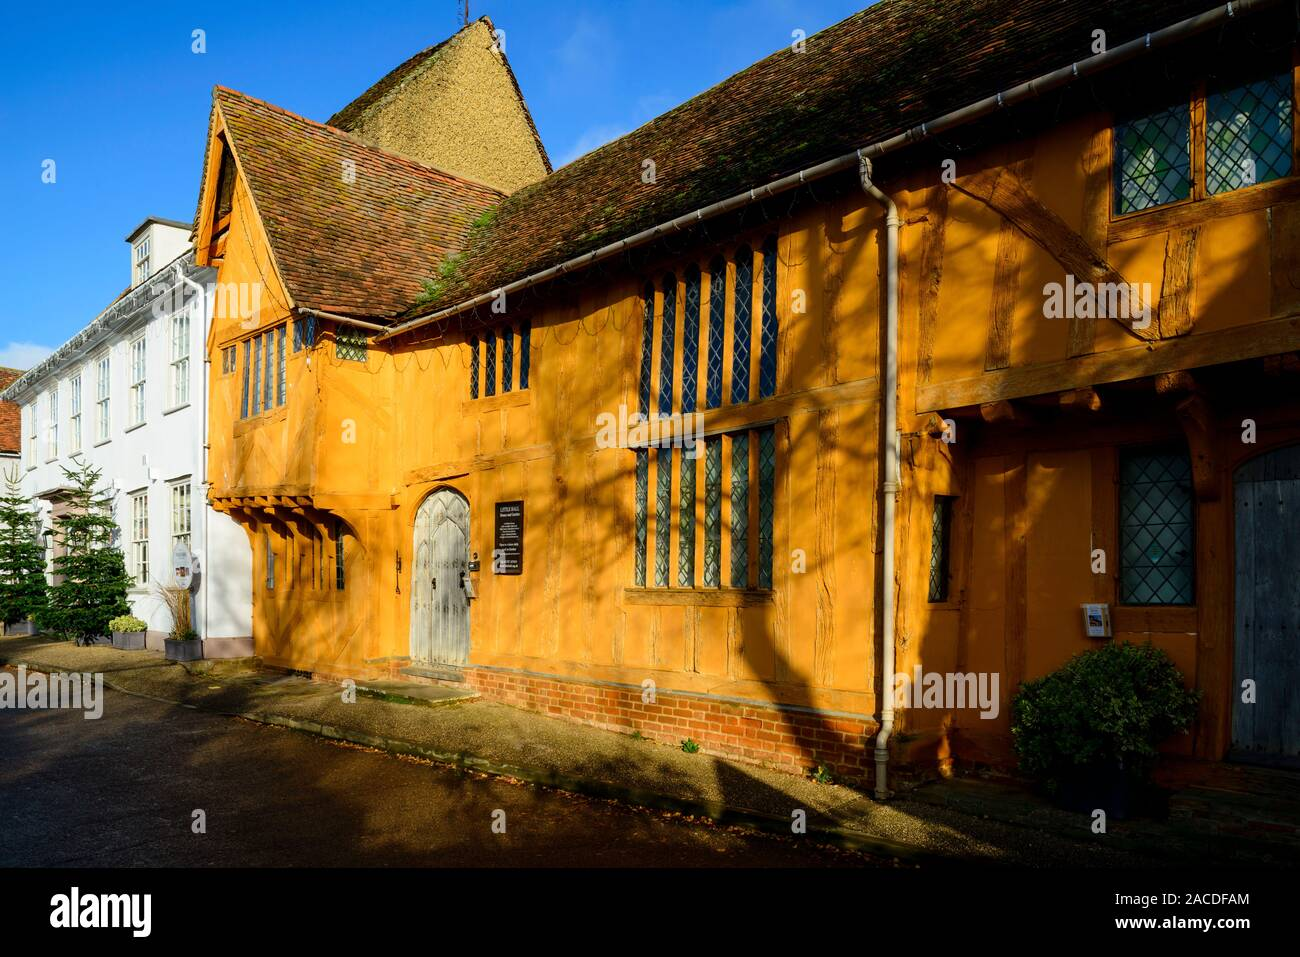 The orange painted Little Hall, which is a late 14th Century timber-famed house in the Market Place, Lavenham, Suffolk, England, UK Stock Photo